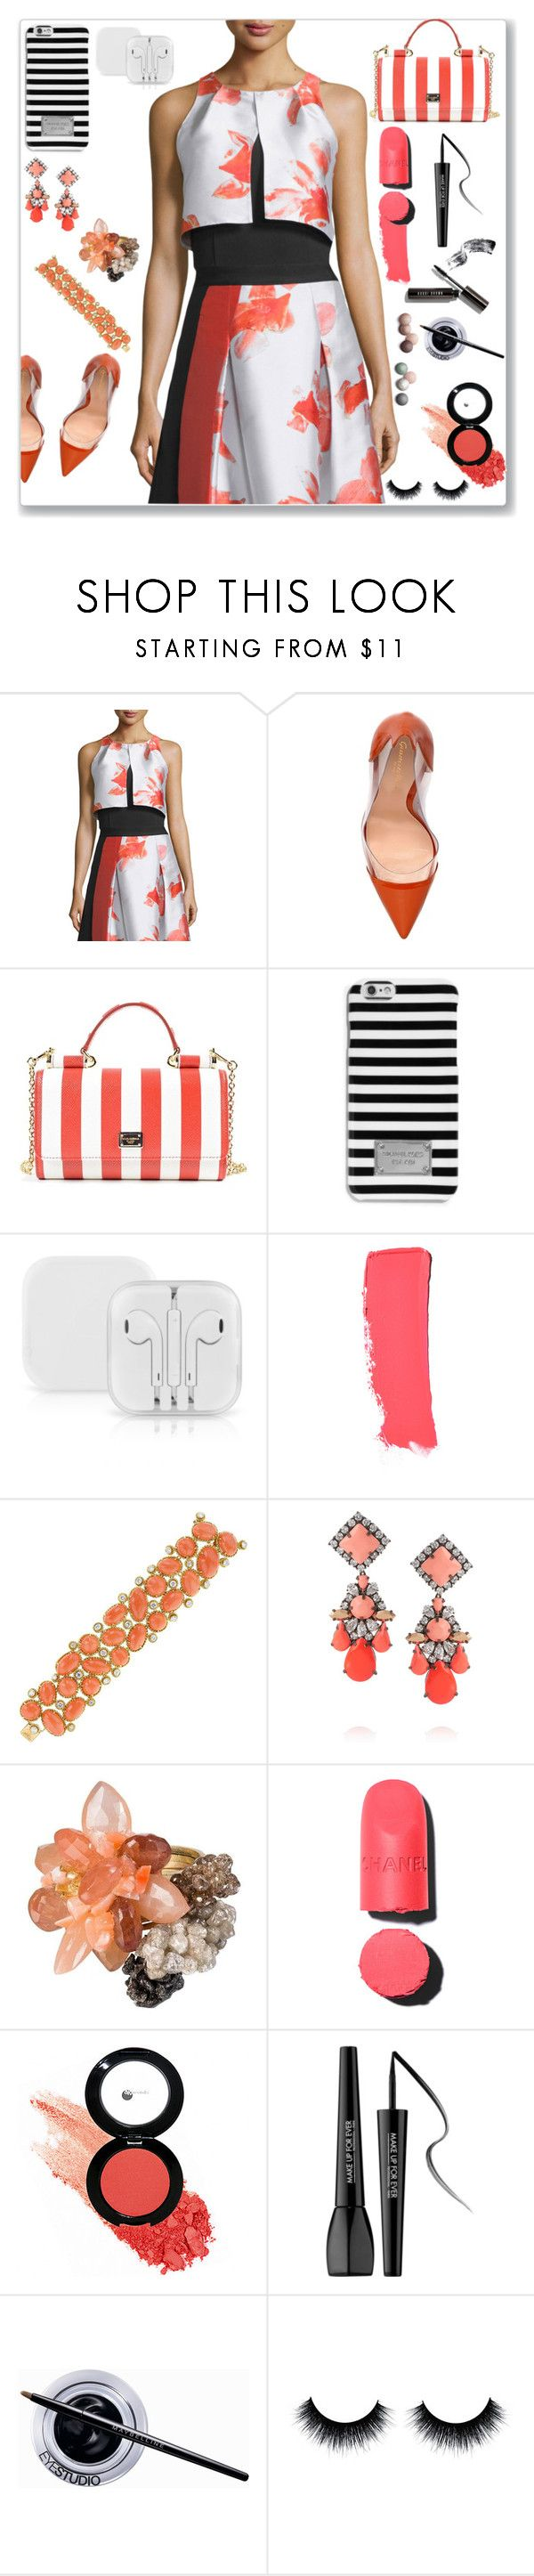 """""""Sin título #367"""" by andy-a-lino ❤ liked on Polyvore featuring NOIR Sachin + Babi, Gianvito Rossi, Dolce&Gabbana, MICHAEL Michael Kors, Chanel, Van Cleef & Arpels, Shourouk, Glo Minerals, MAKE UP FOR EVER and Maybelline"""